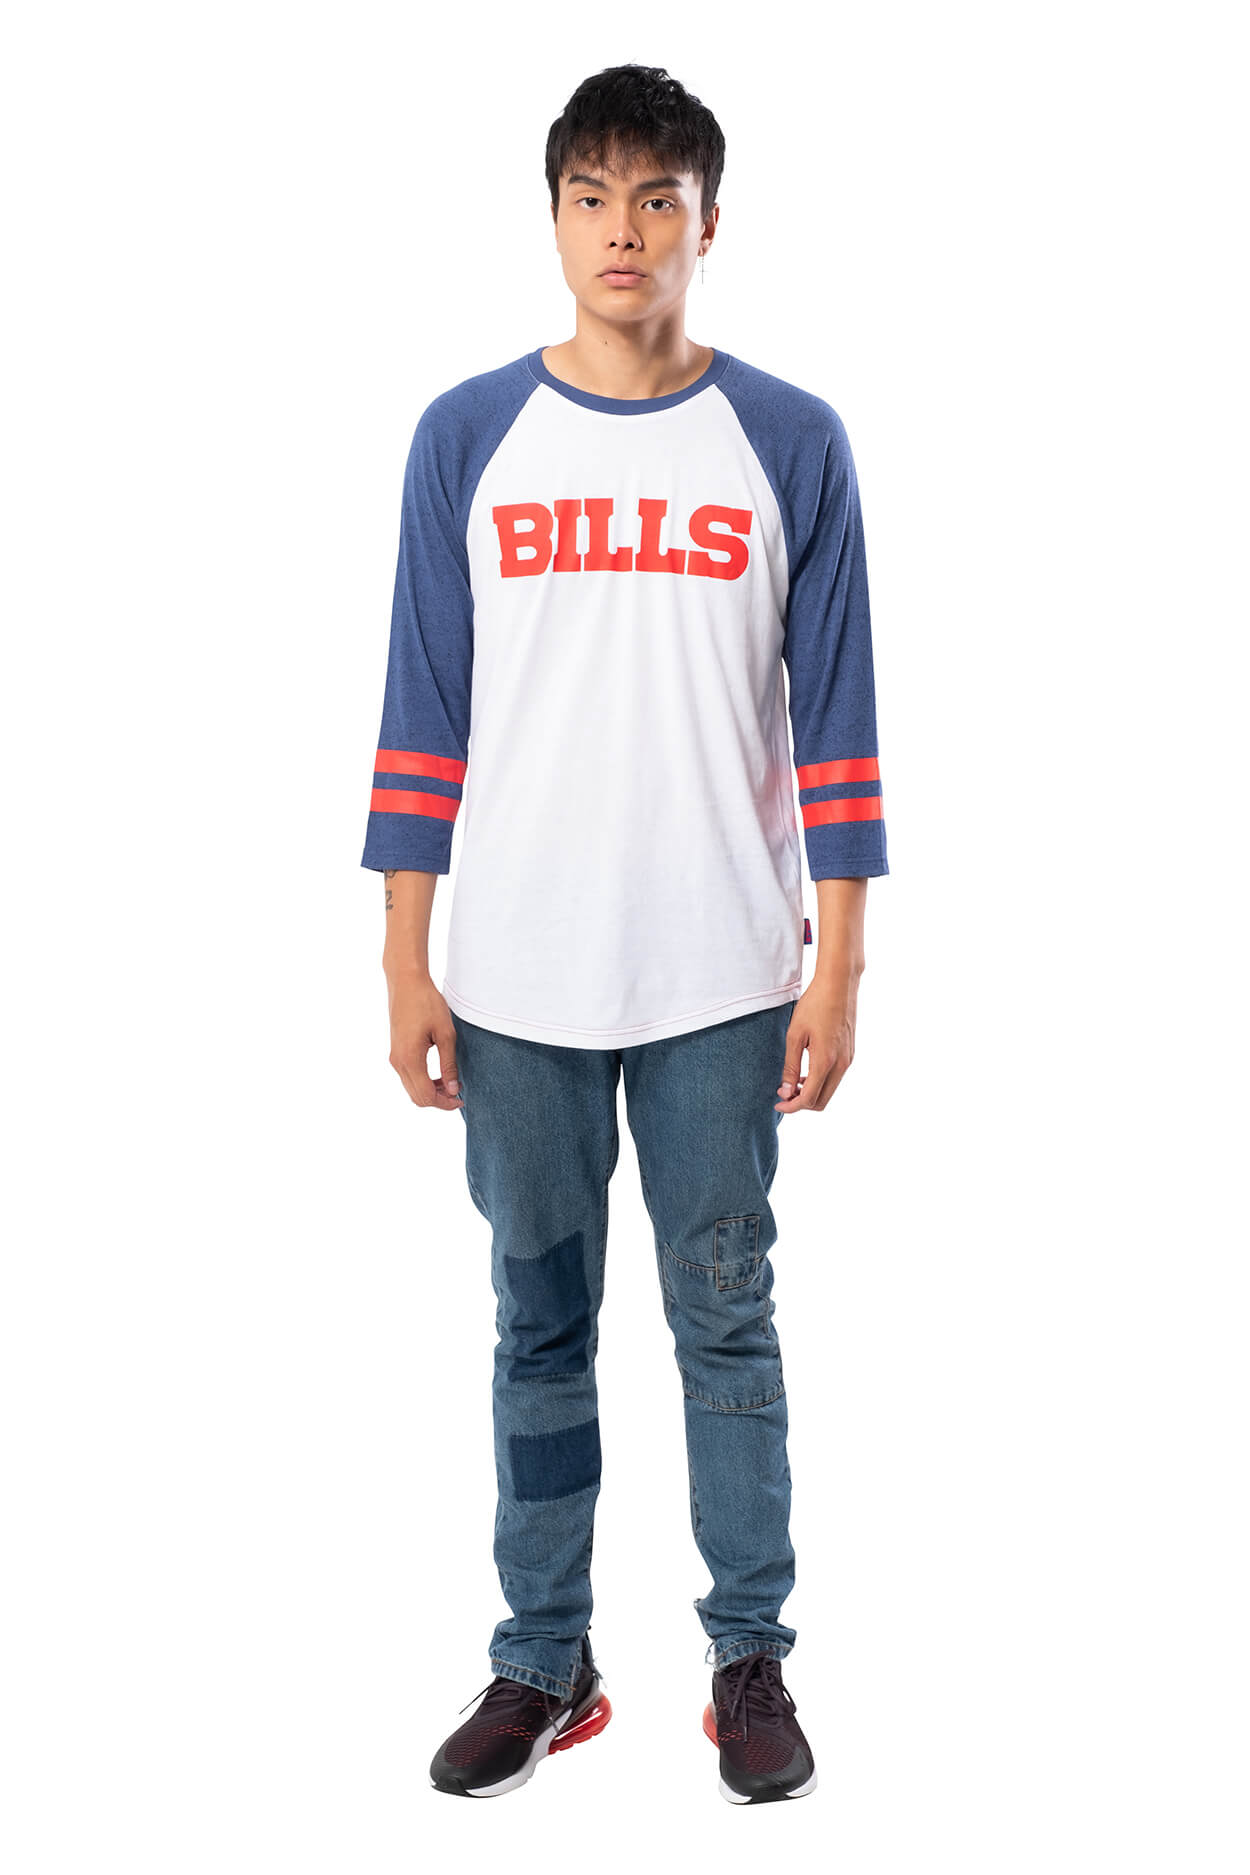 NFL Buffalo Bills Men's Baseball Tee|Buffalo Bills